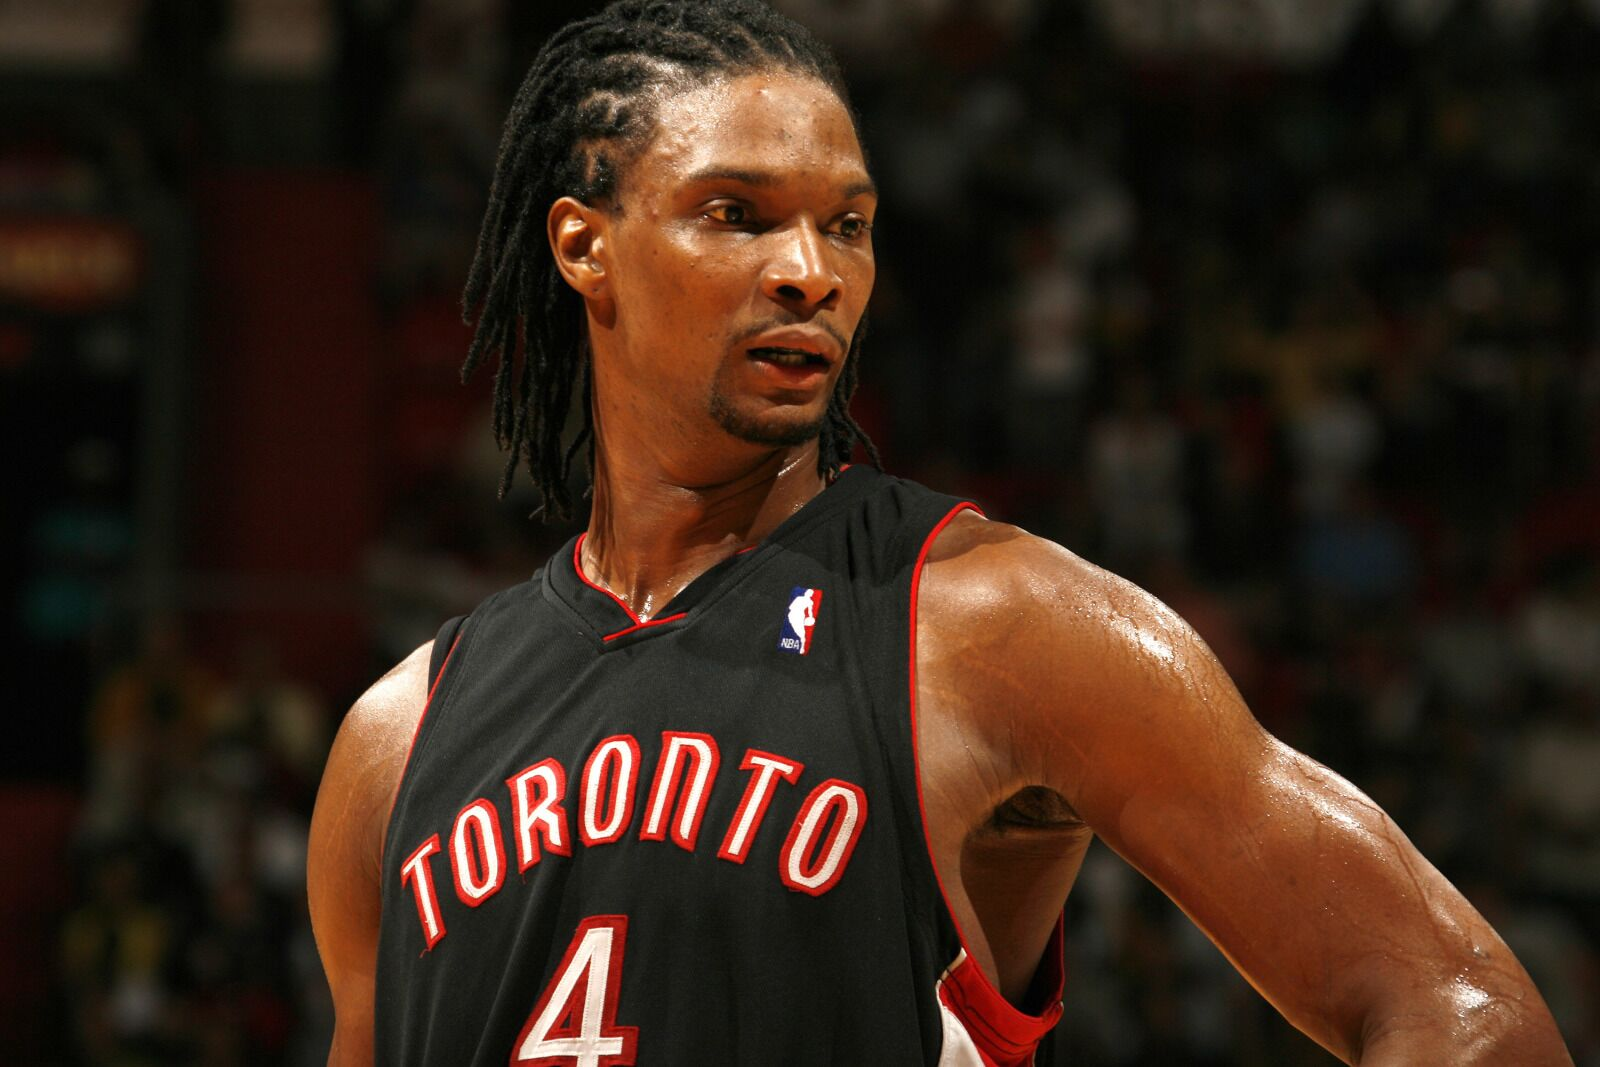 Chris Bosh will have to wait to have his jersey retired by Toronto Raptors